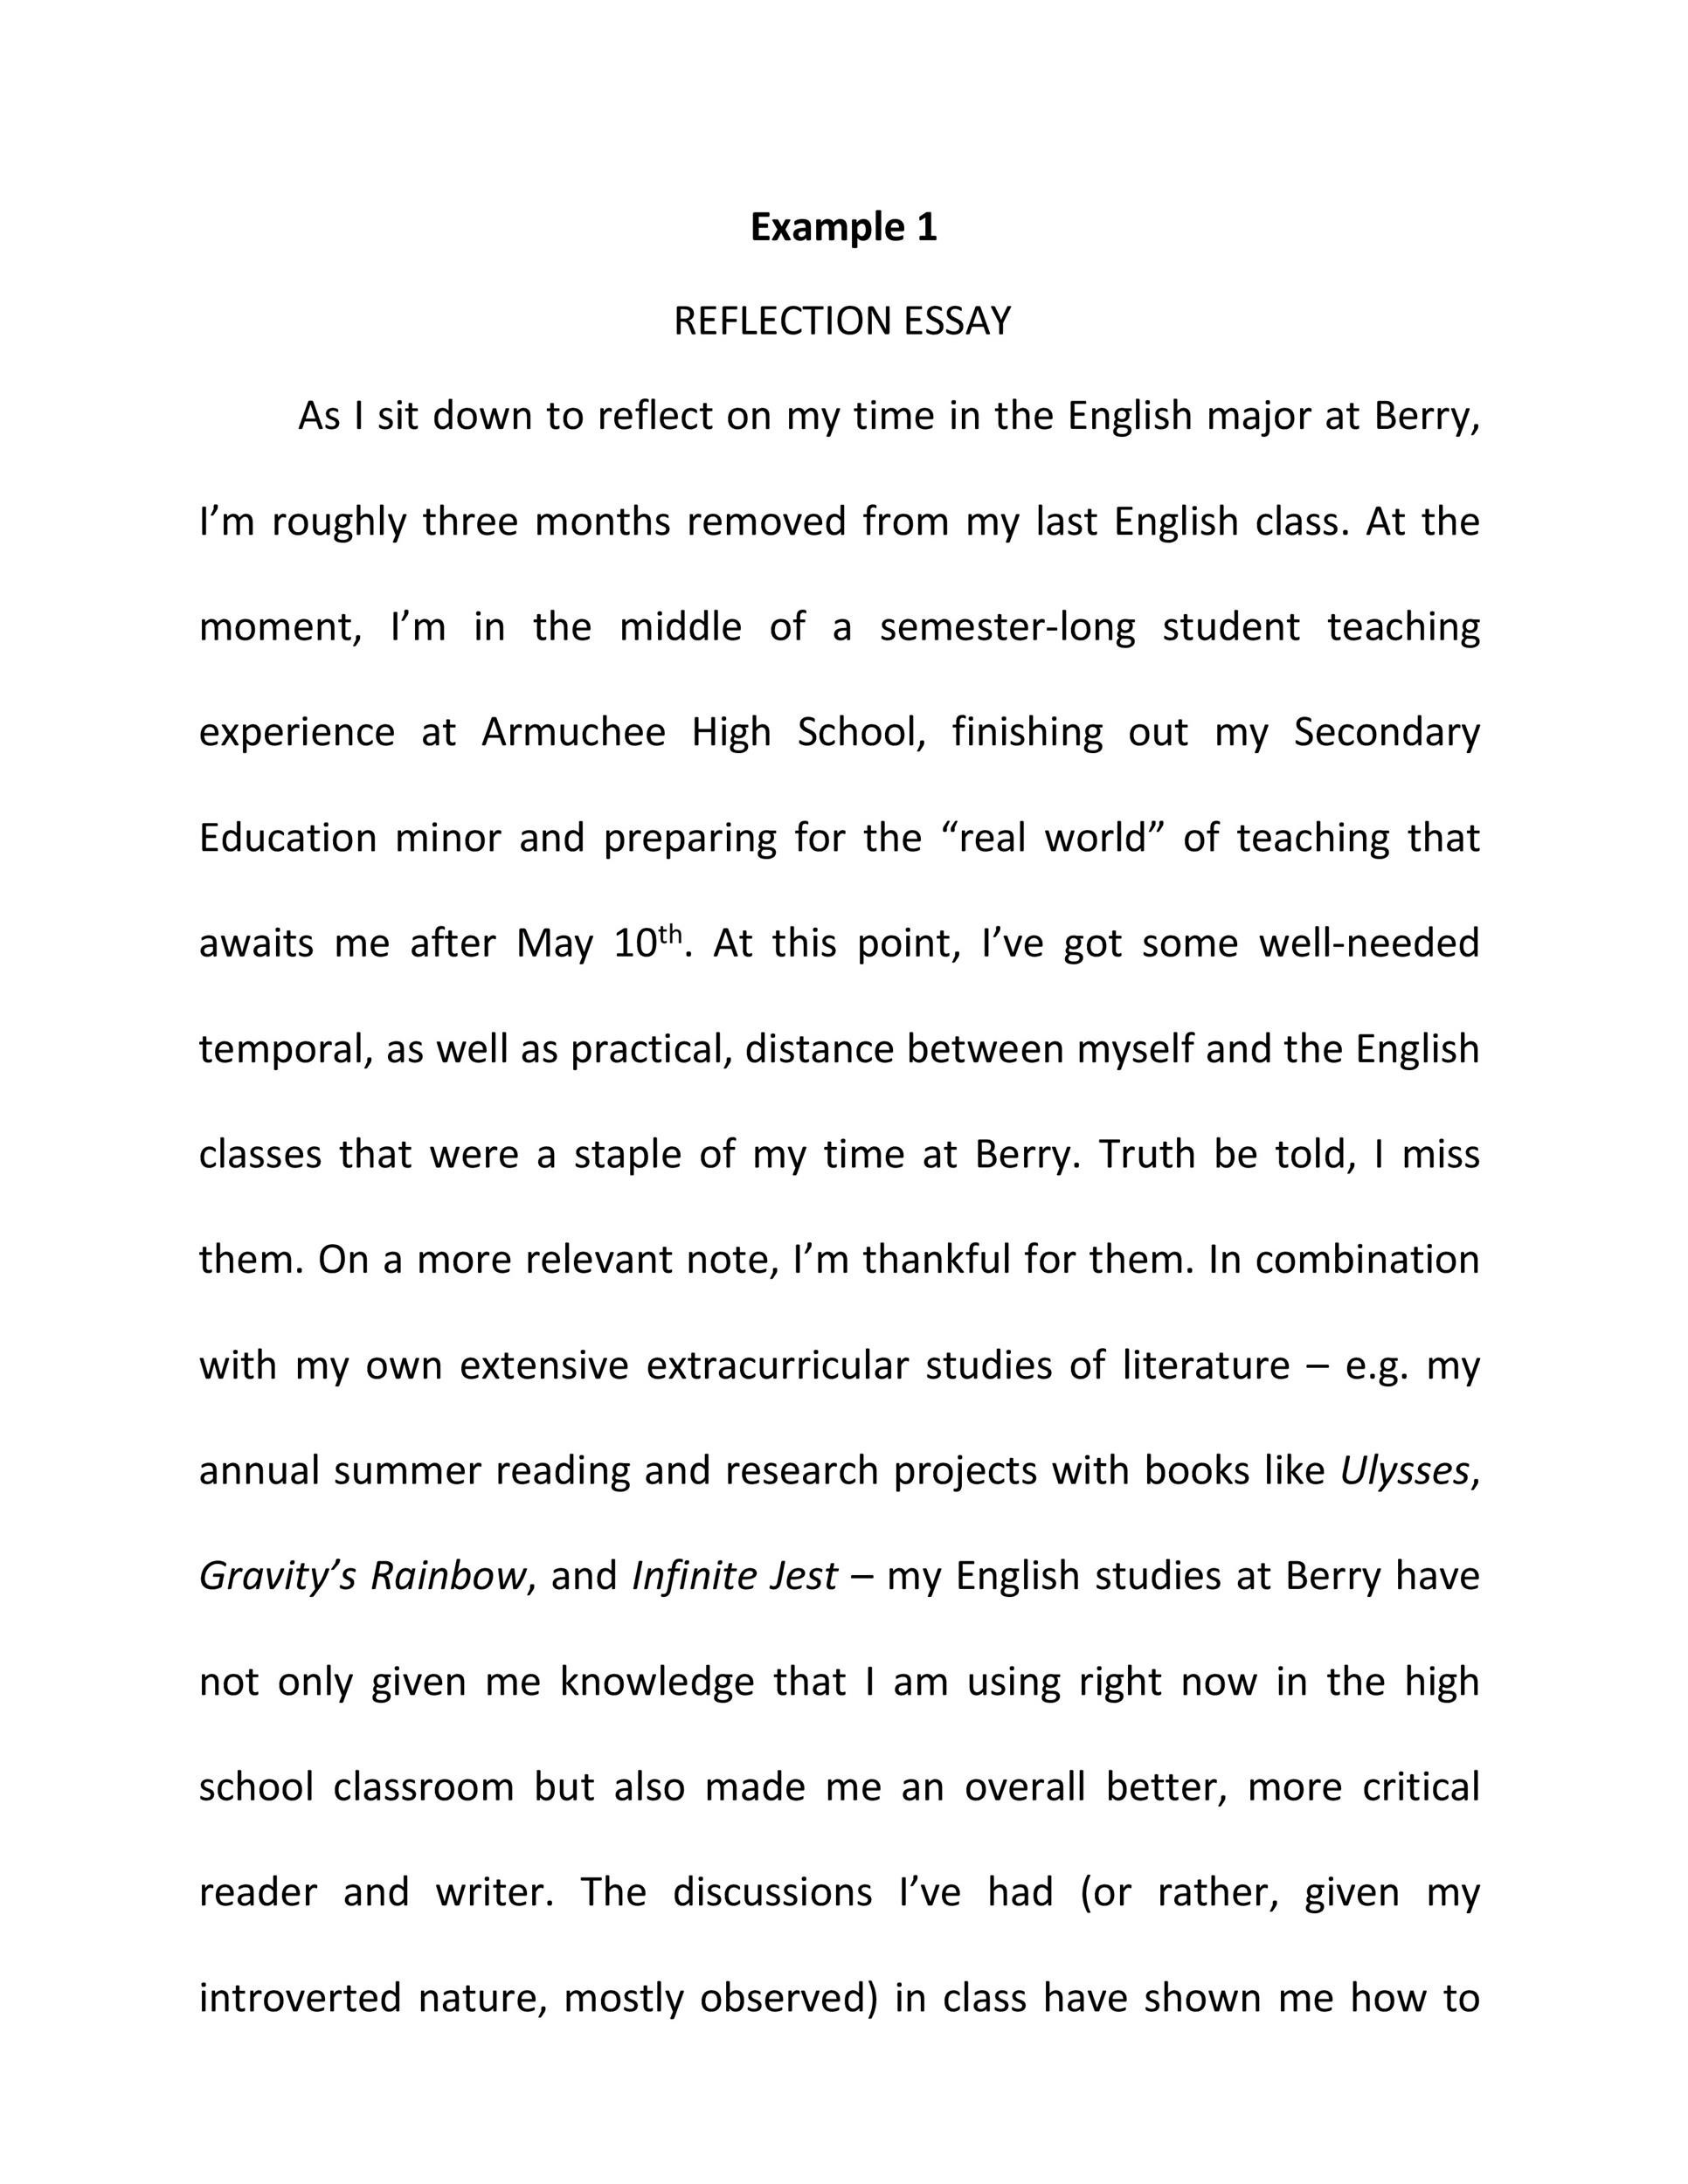 How To Write An Application Essay For High School  Essay About English Language also Essay Thesis Statement Generator  Best Reflective Essay Examples Topic Samples   English Composition Essay